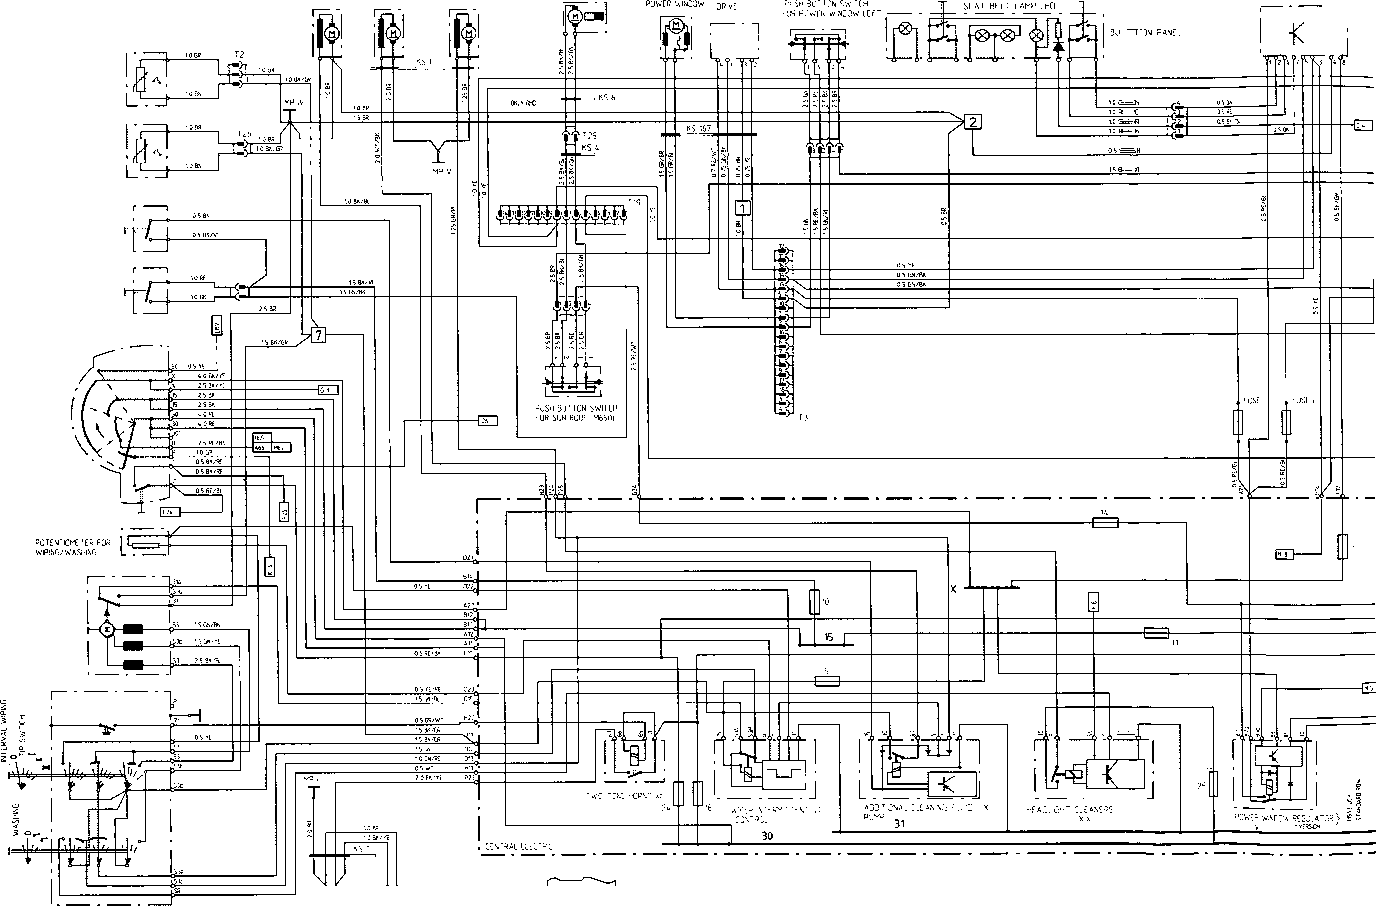 1977 Porsche 924 Wiper Wire Diagram